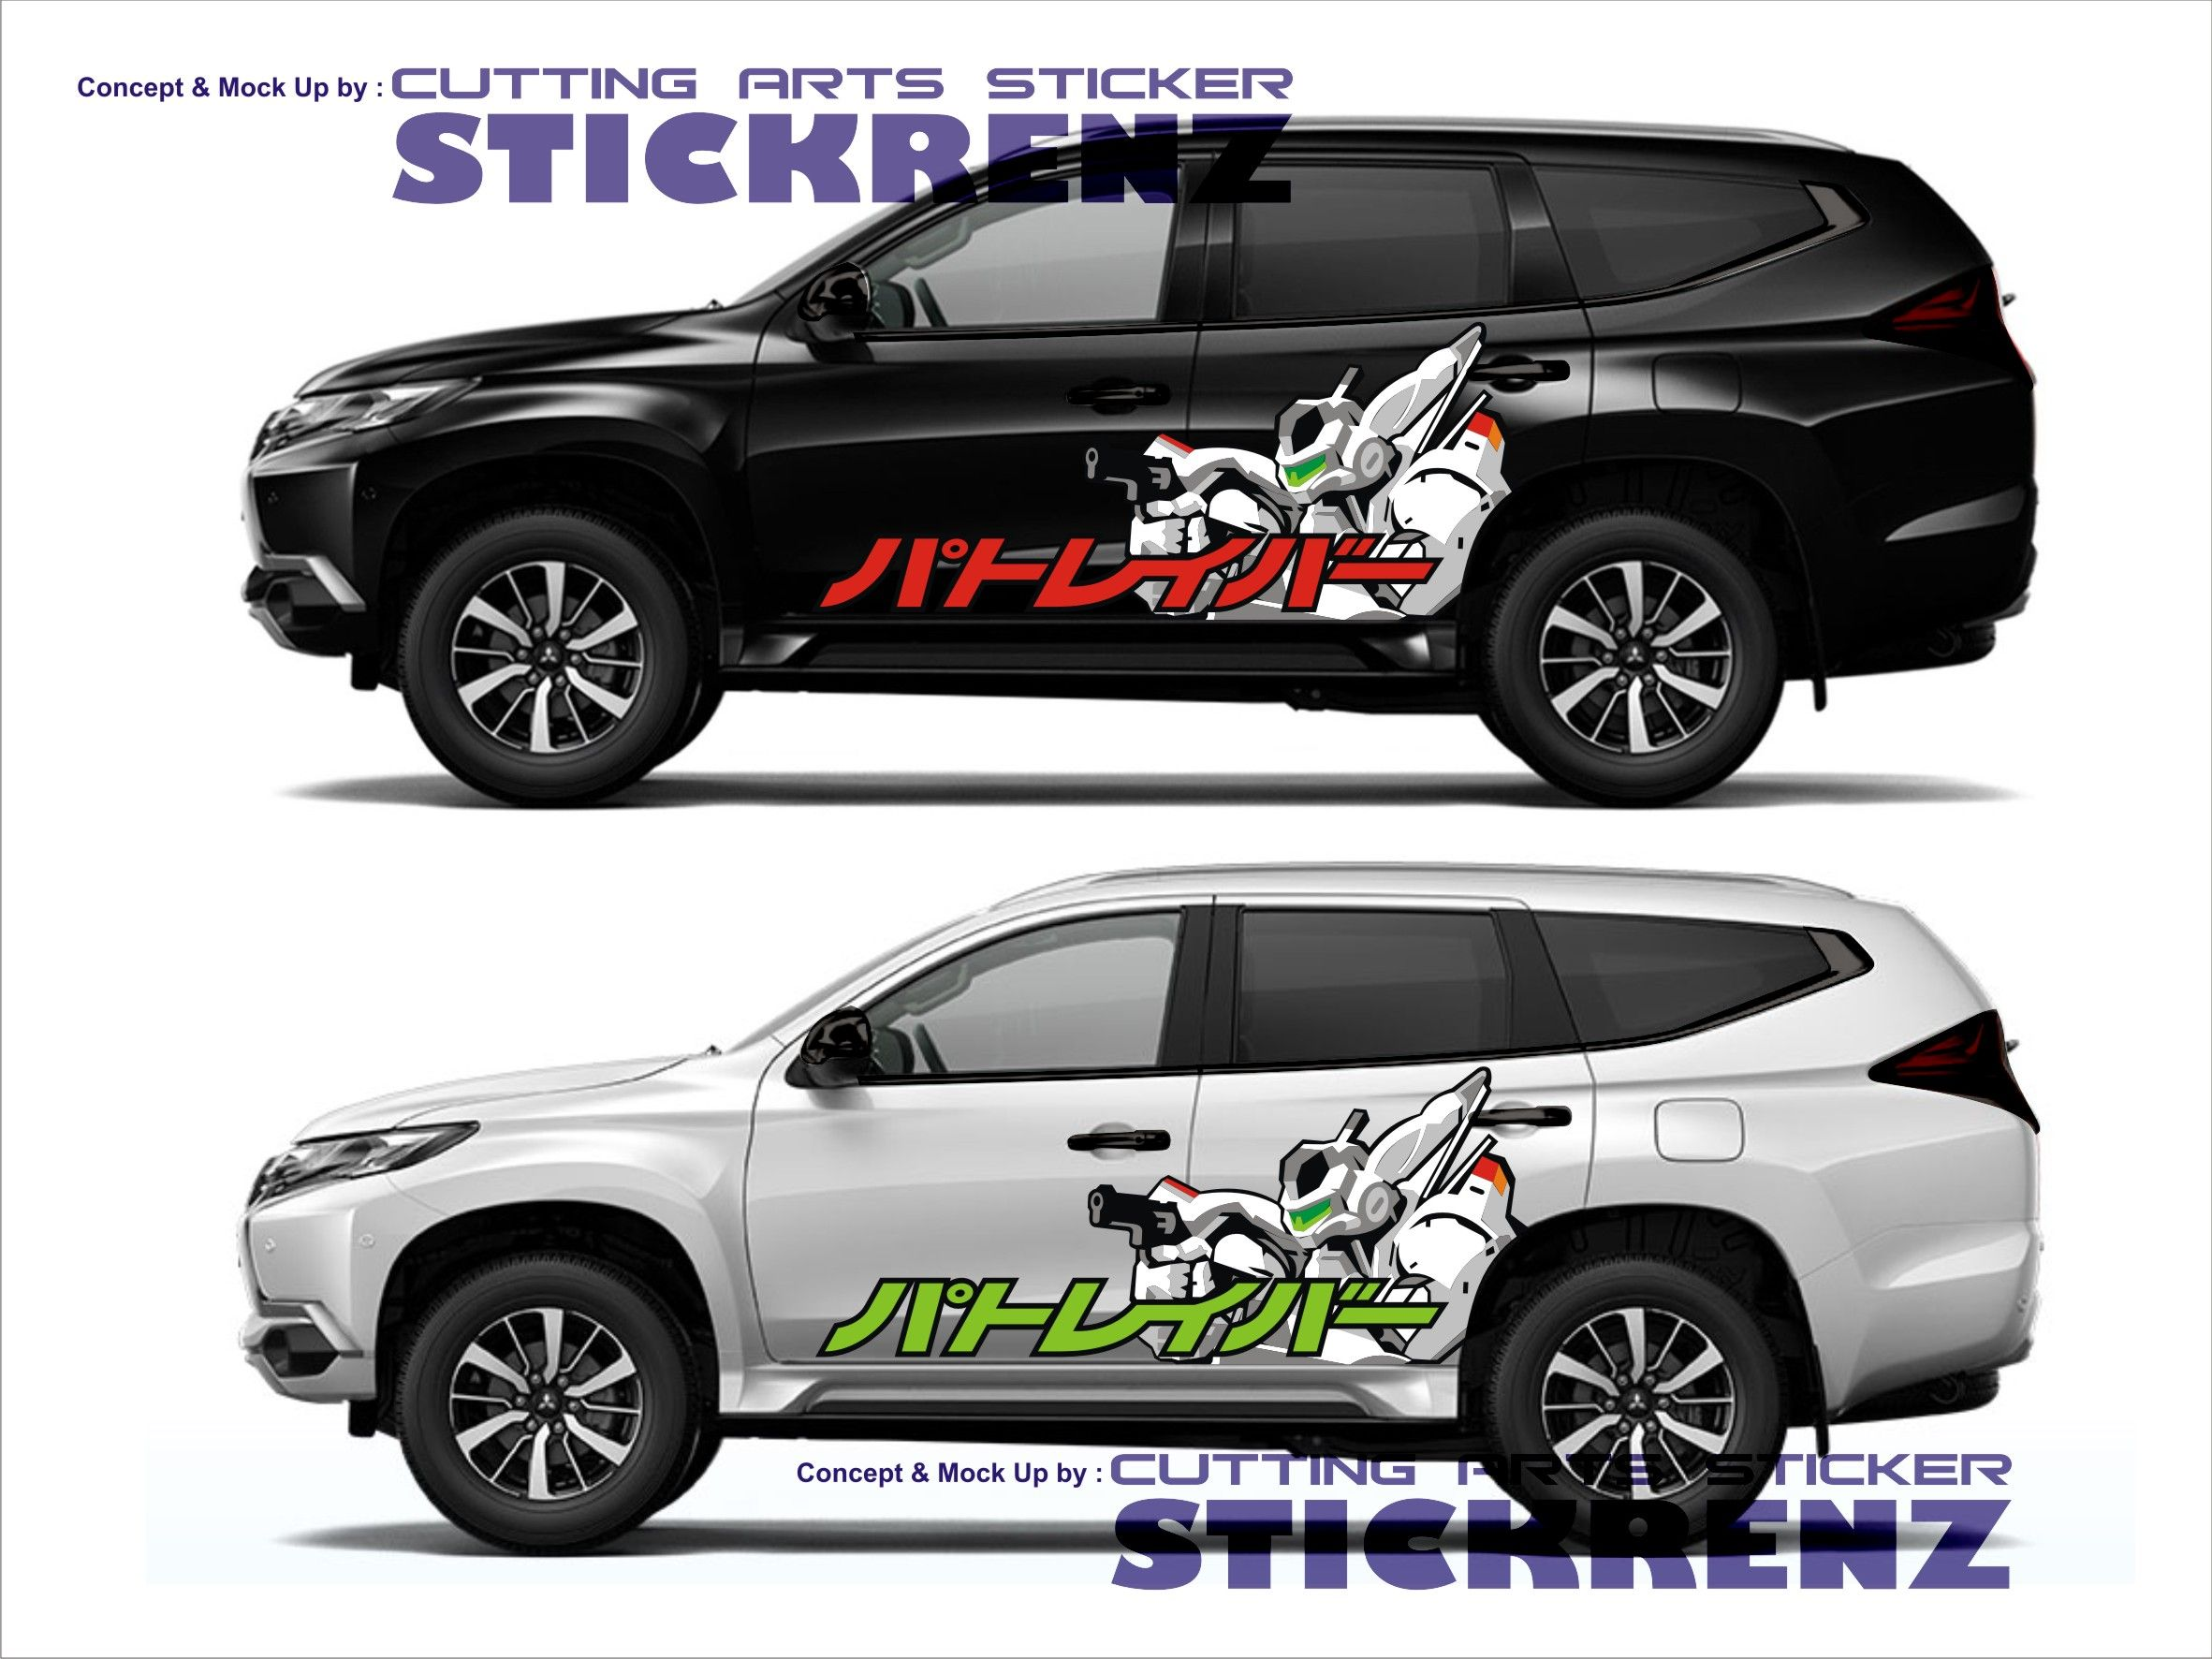 Car custom side cutting sticker concept pajero 009